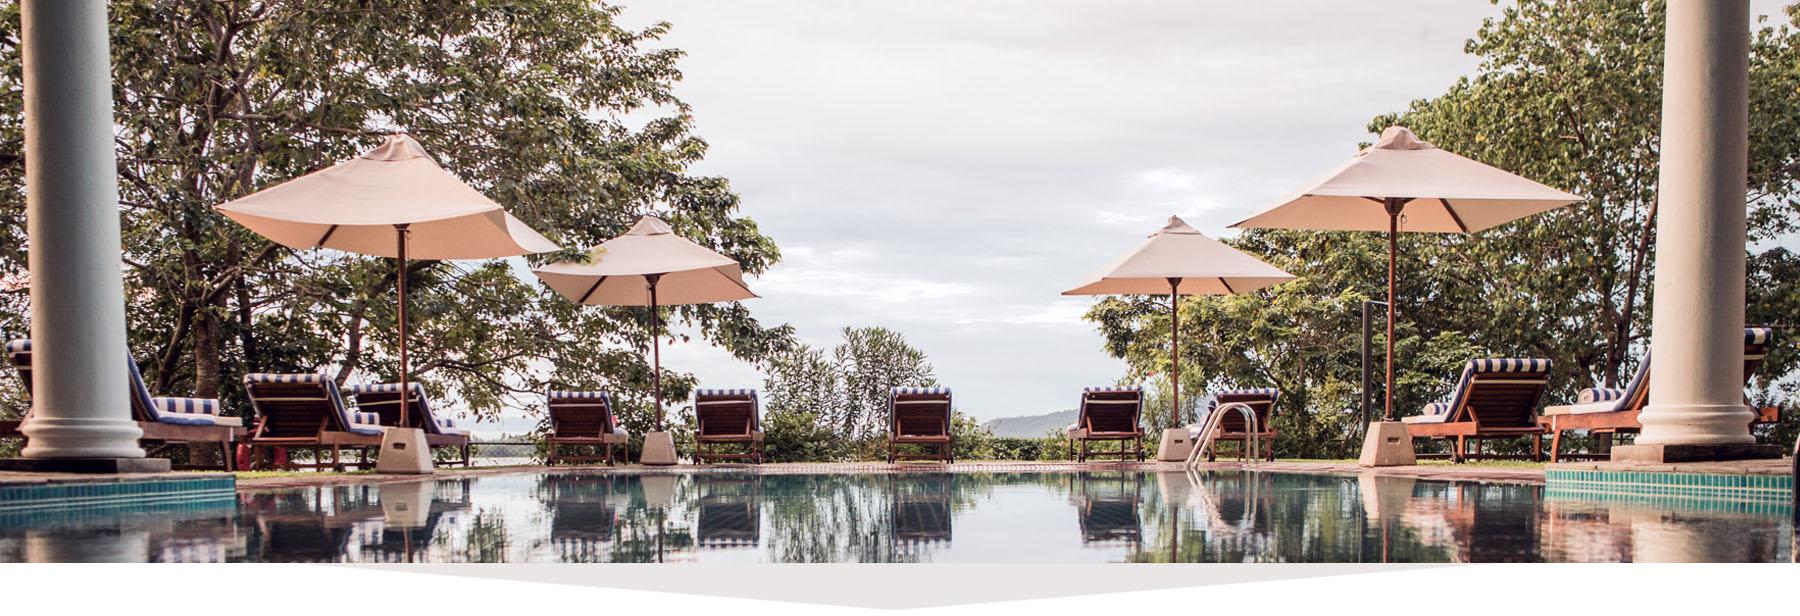 Welcome to Thaulle Resort in Sri Lanka | design hotel and ayurveda hotel